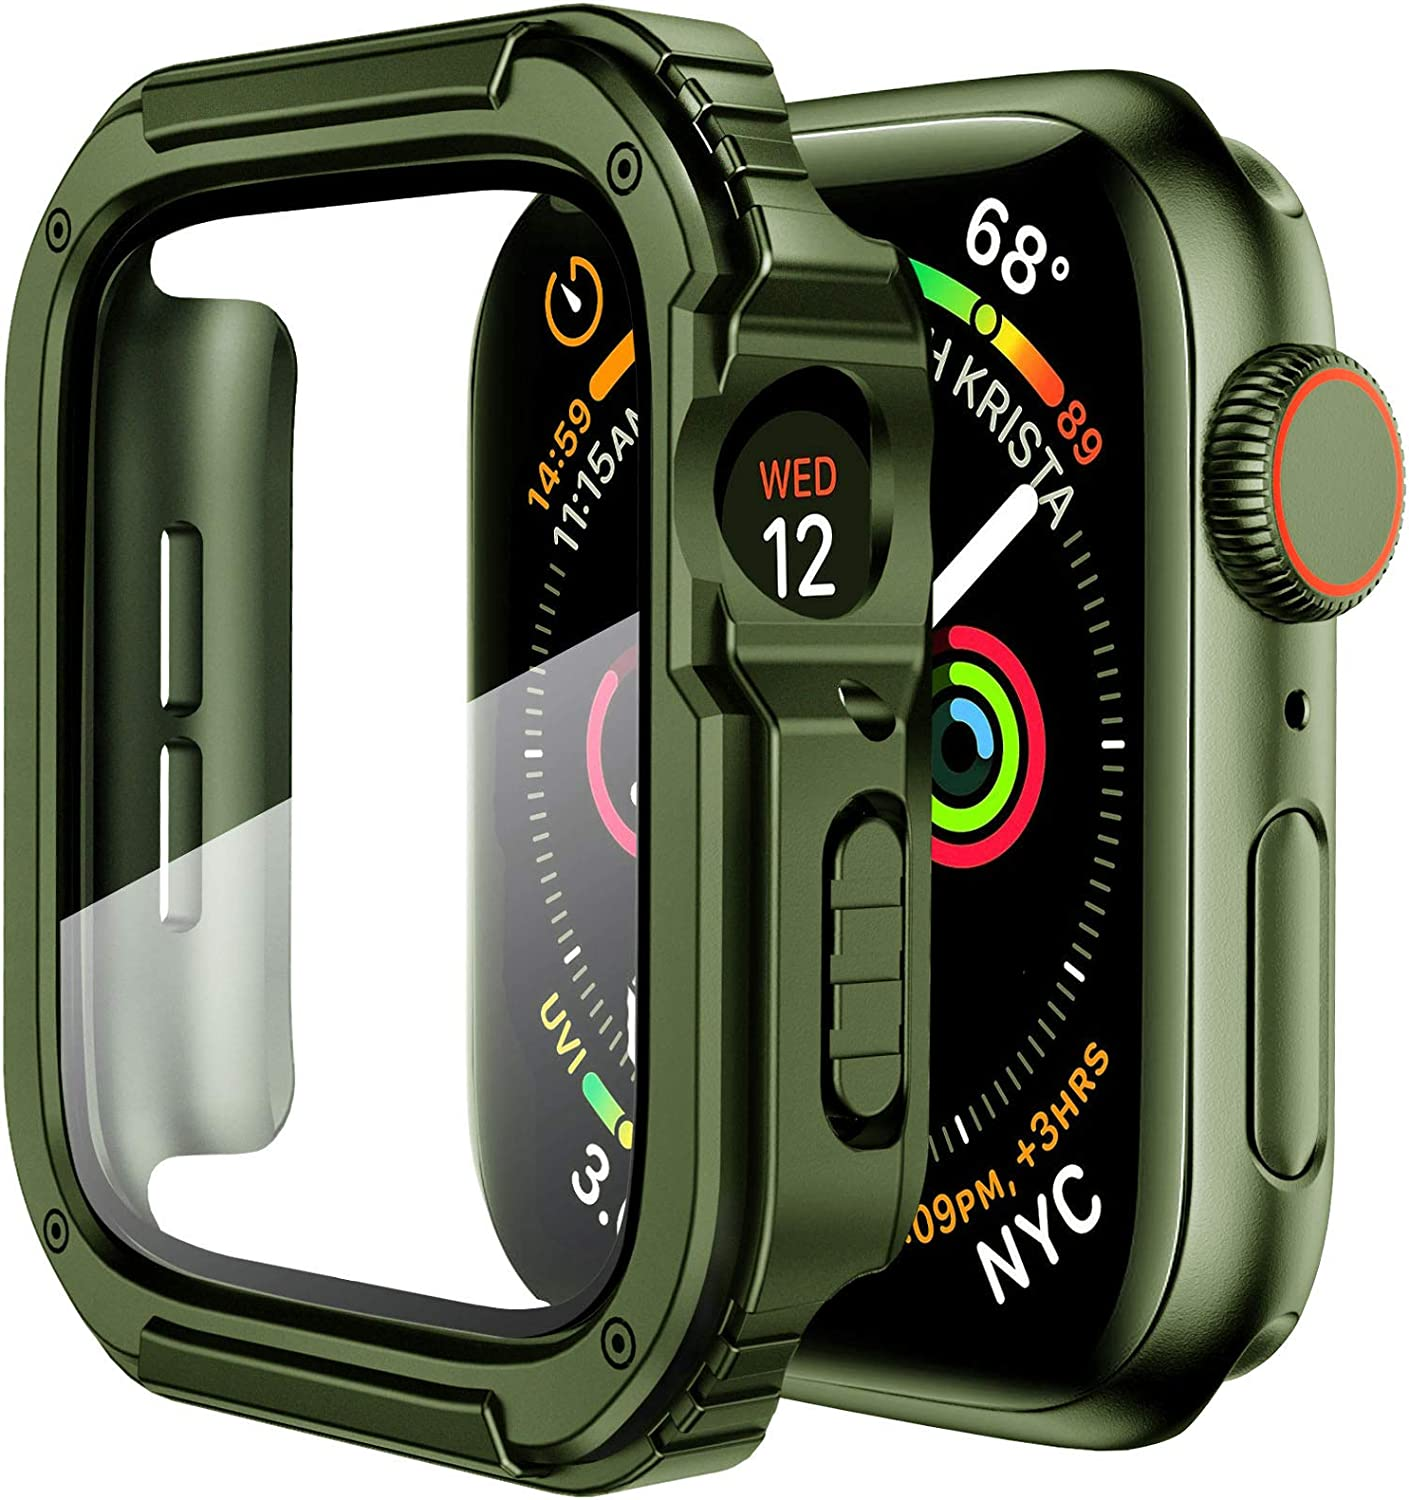 Mesime Rugged Case Cover Compatible for Apple Watch 44mm with Tempered Glass Screen for iwatch Series 4 5 6 SE Protective Bumper Accessories Hard Case for Women Men -Army Gree